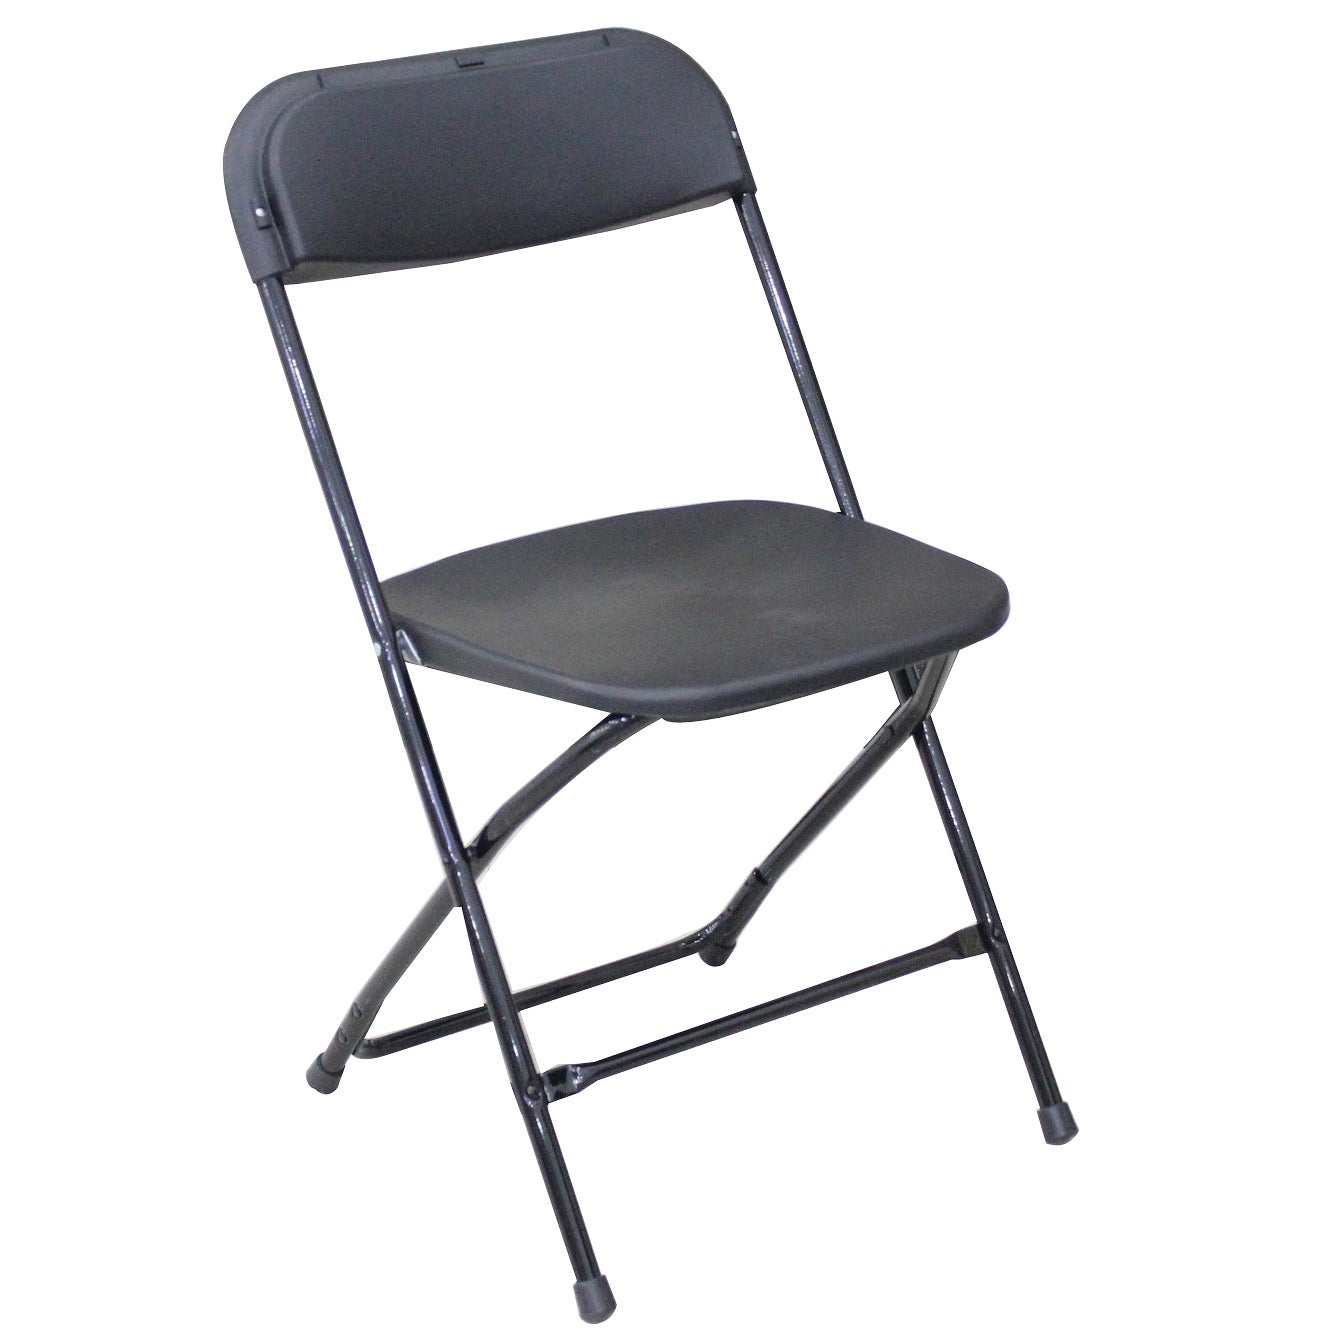 Gallery Lightweight Black Plastic Folding Chairs (Pack of 6) - Thumbnail 0